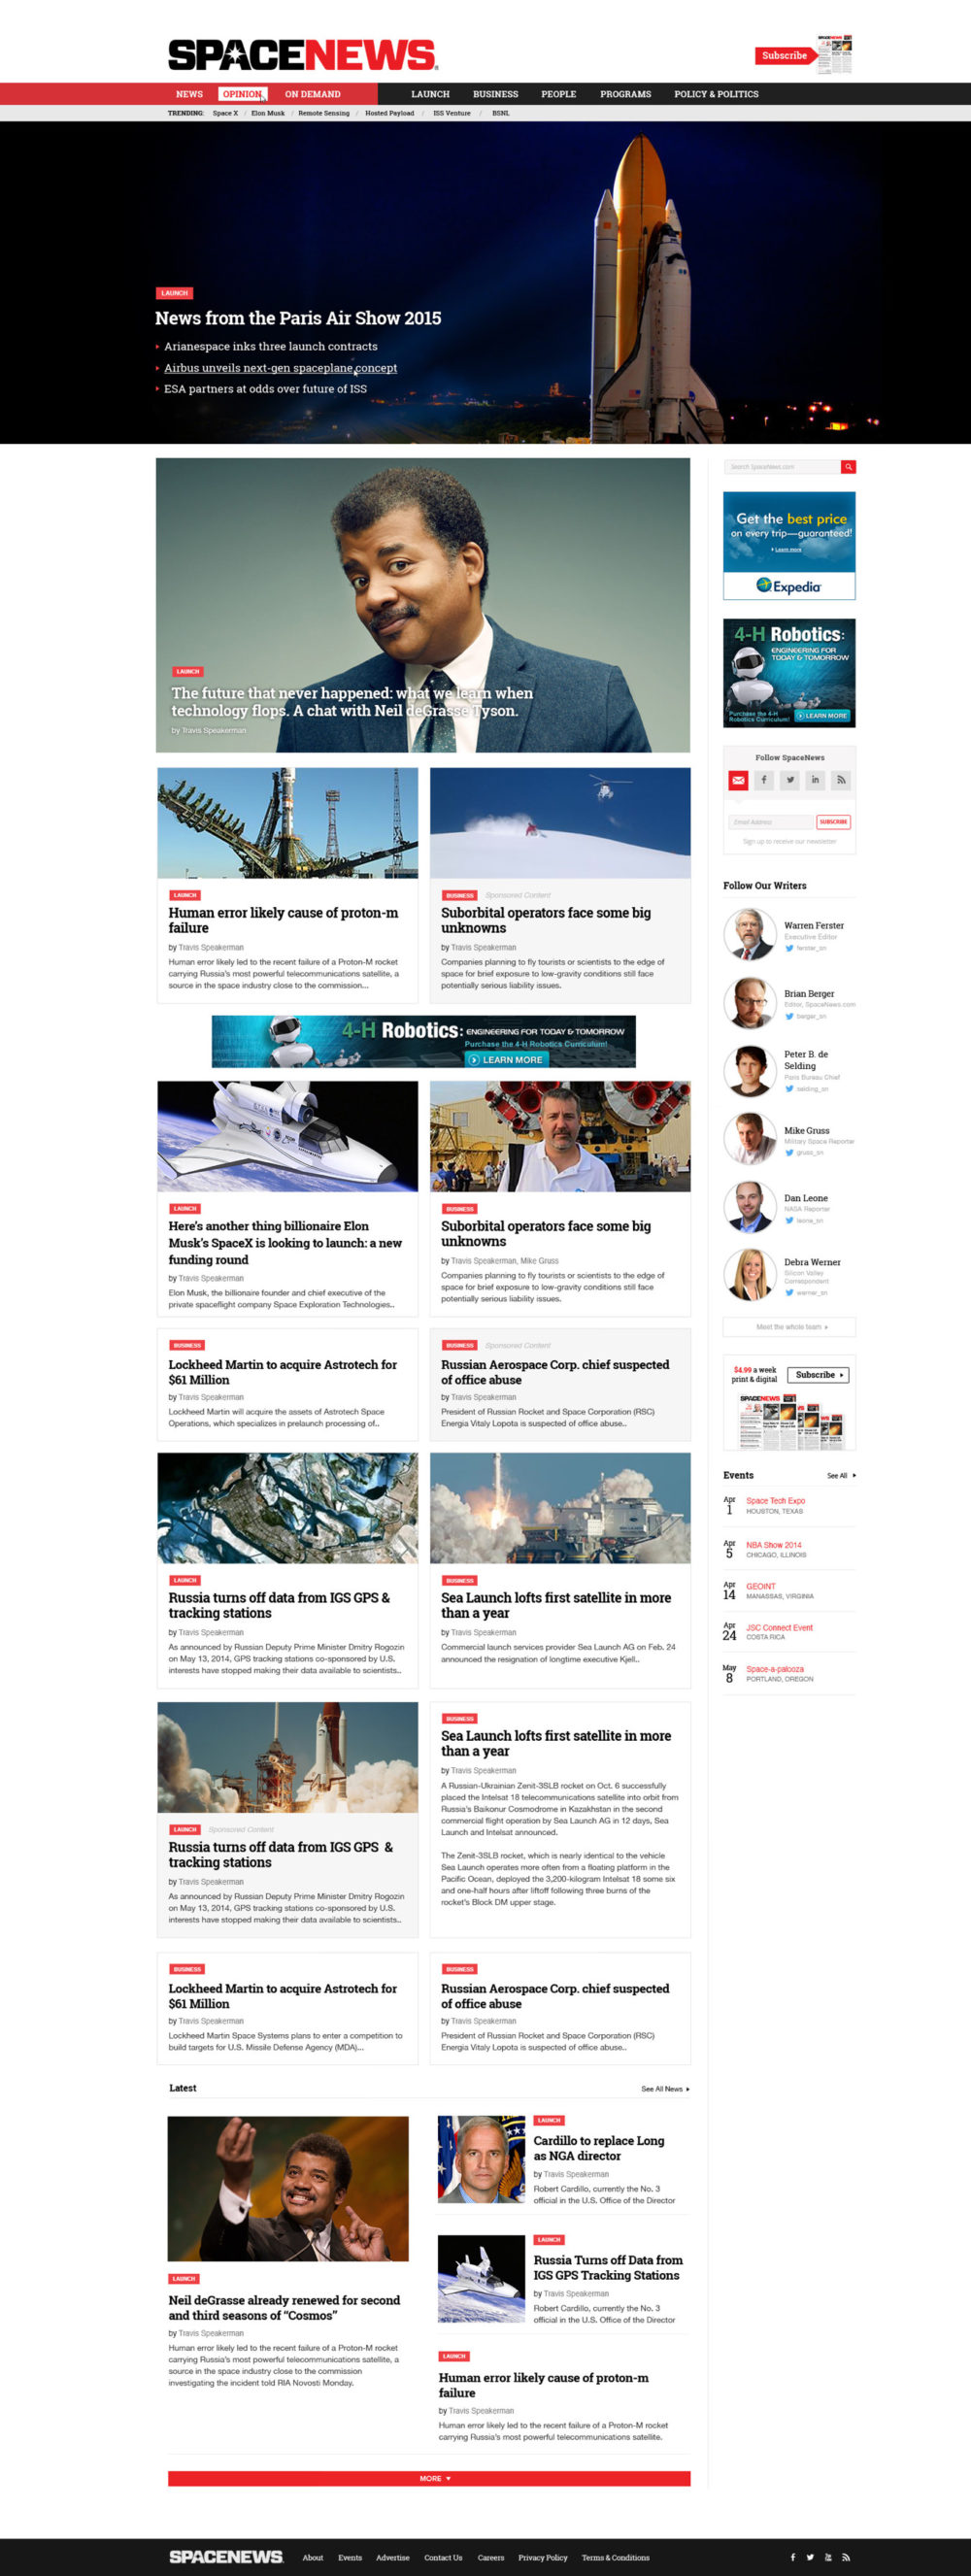 SpaceNews WordPress homepage mockup